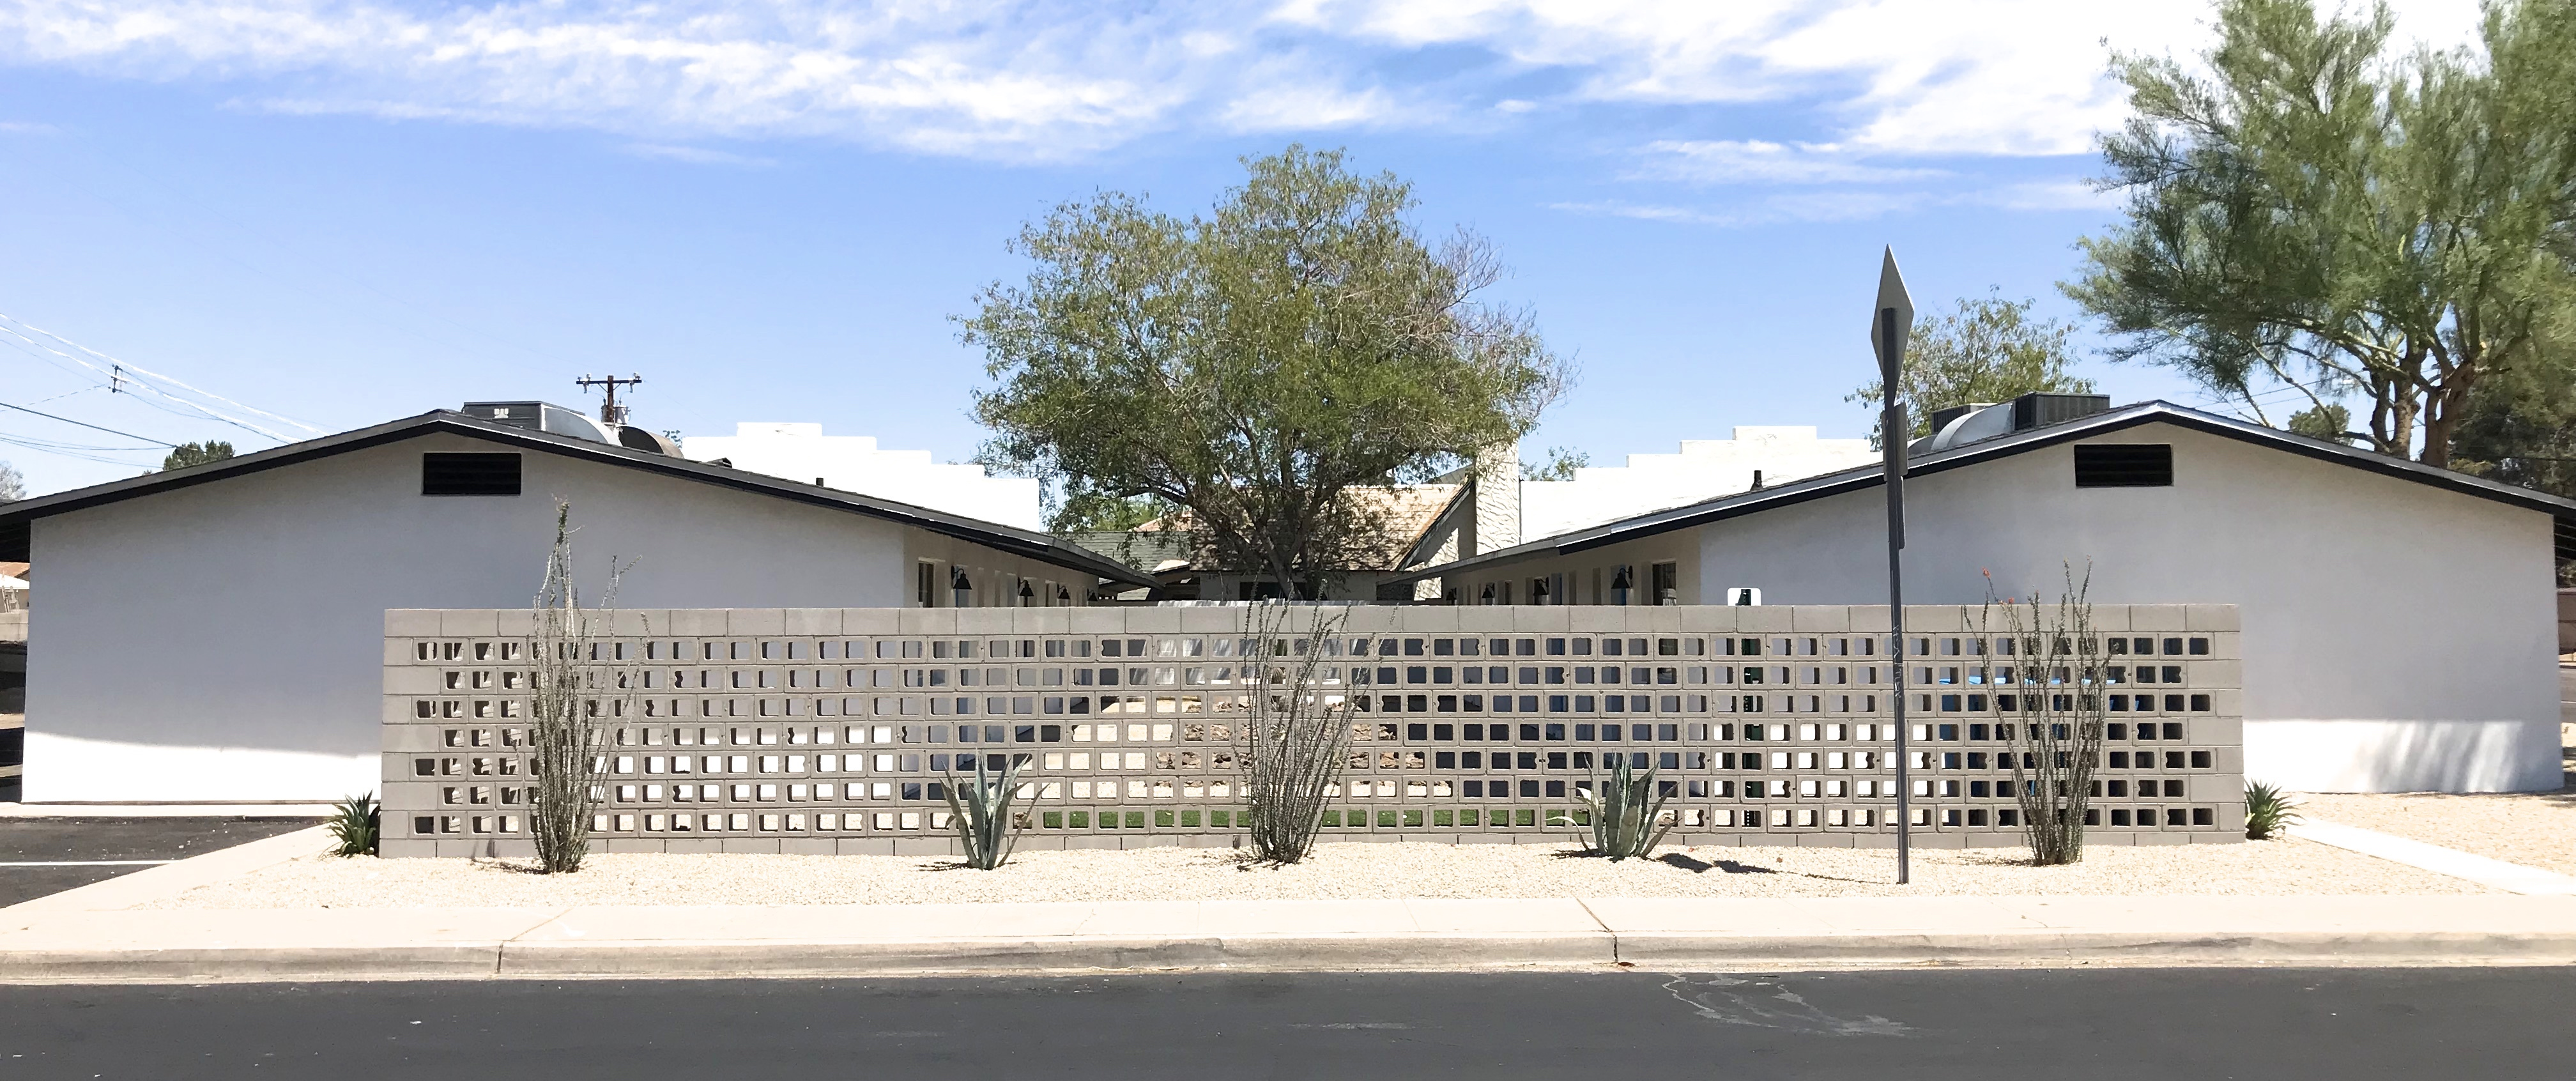 2004 N 24th St, Phoenix, AZ 85008 | Biltmore Phoenix Apartments For Rent